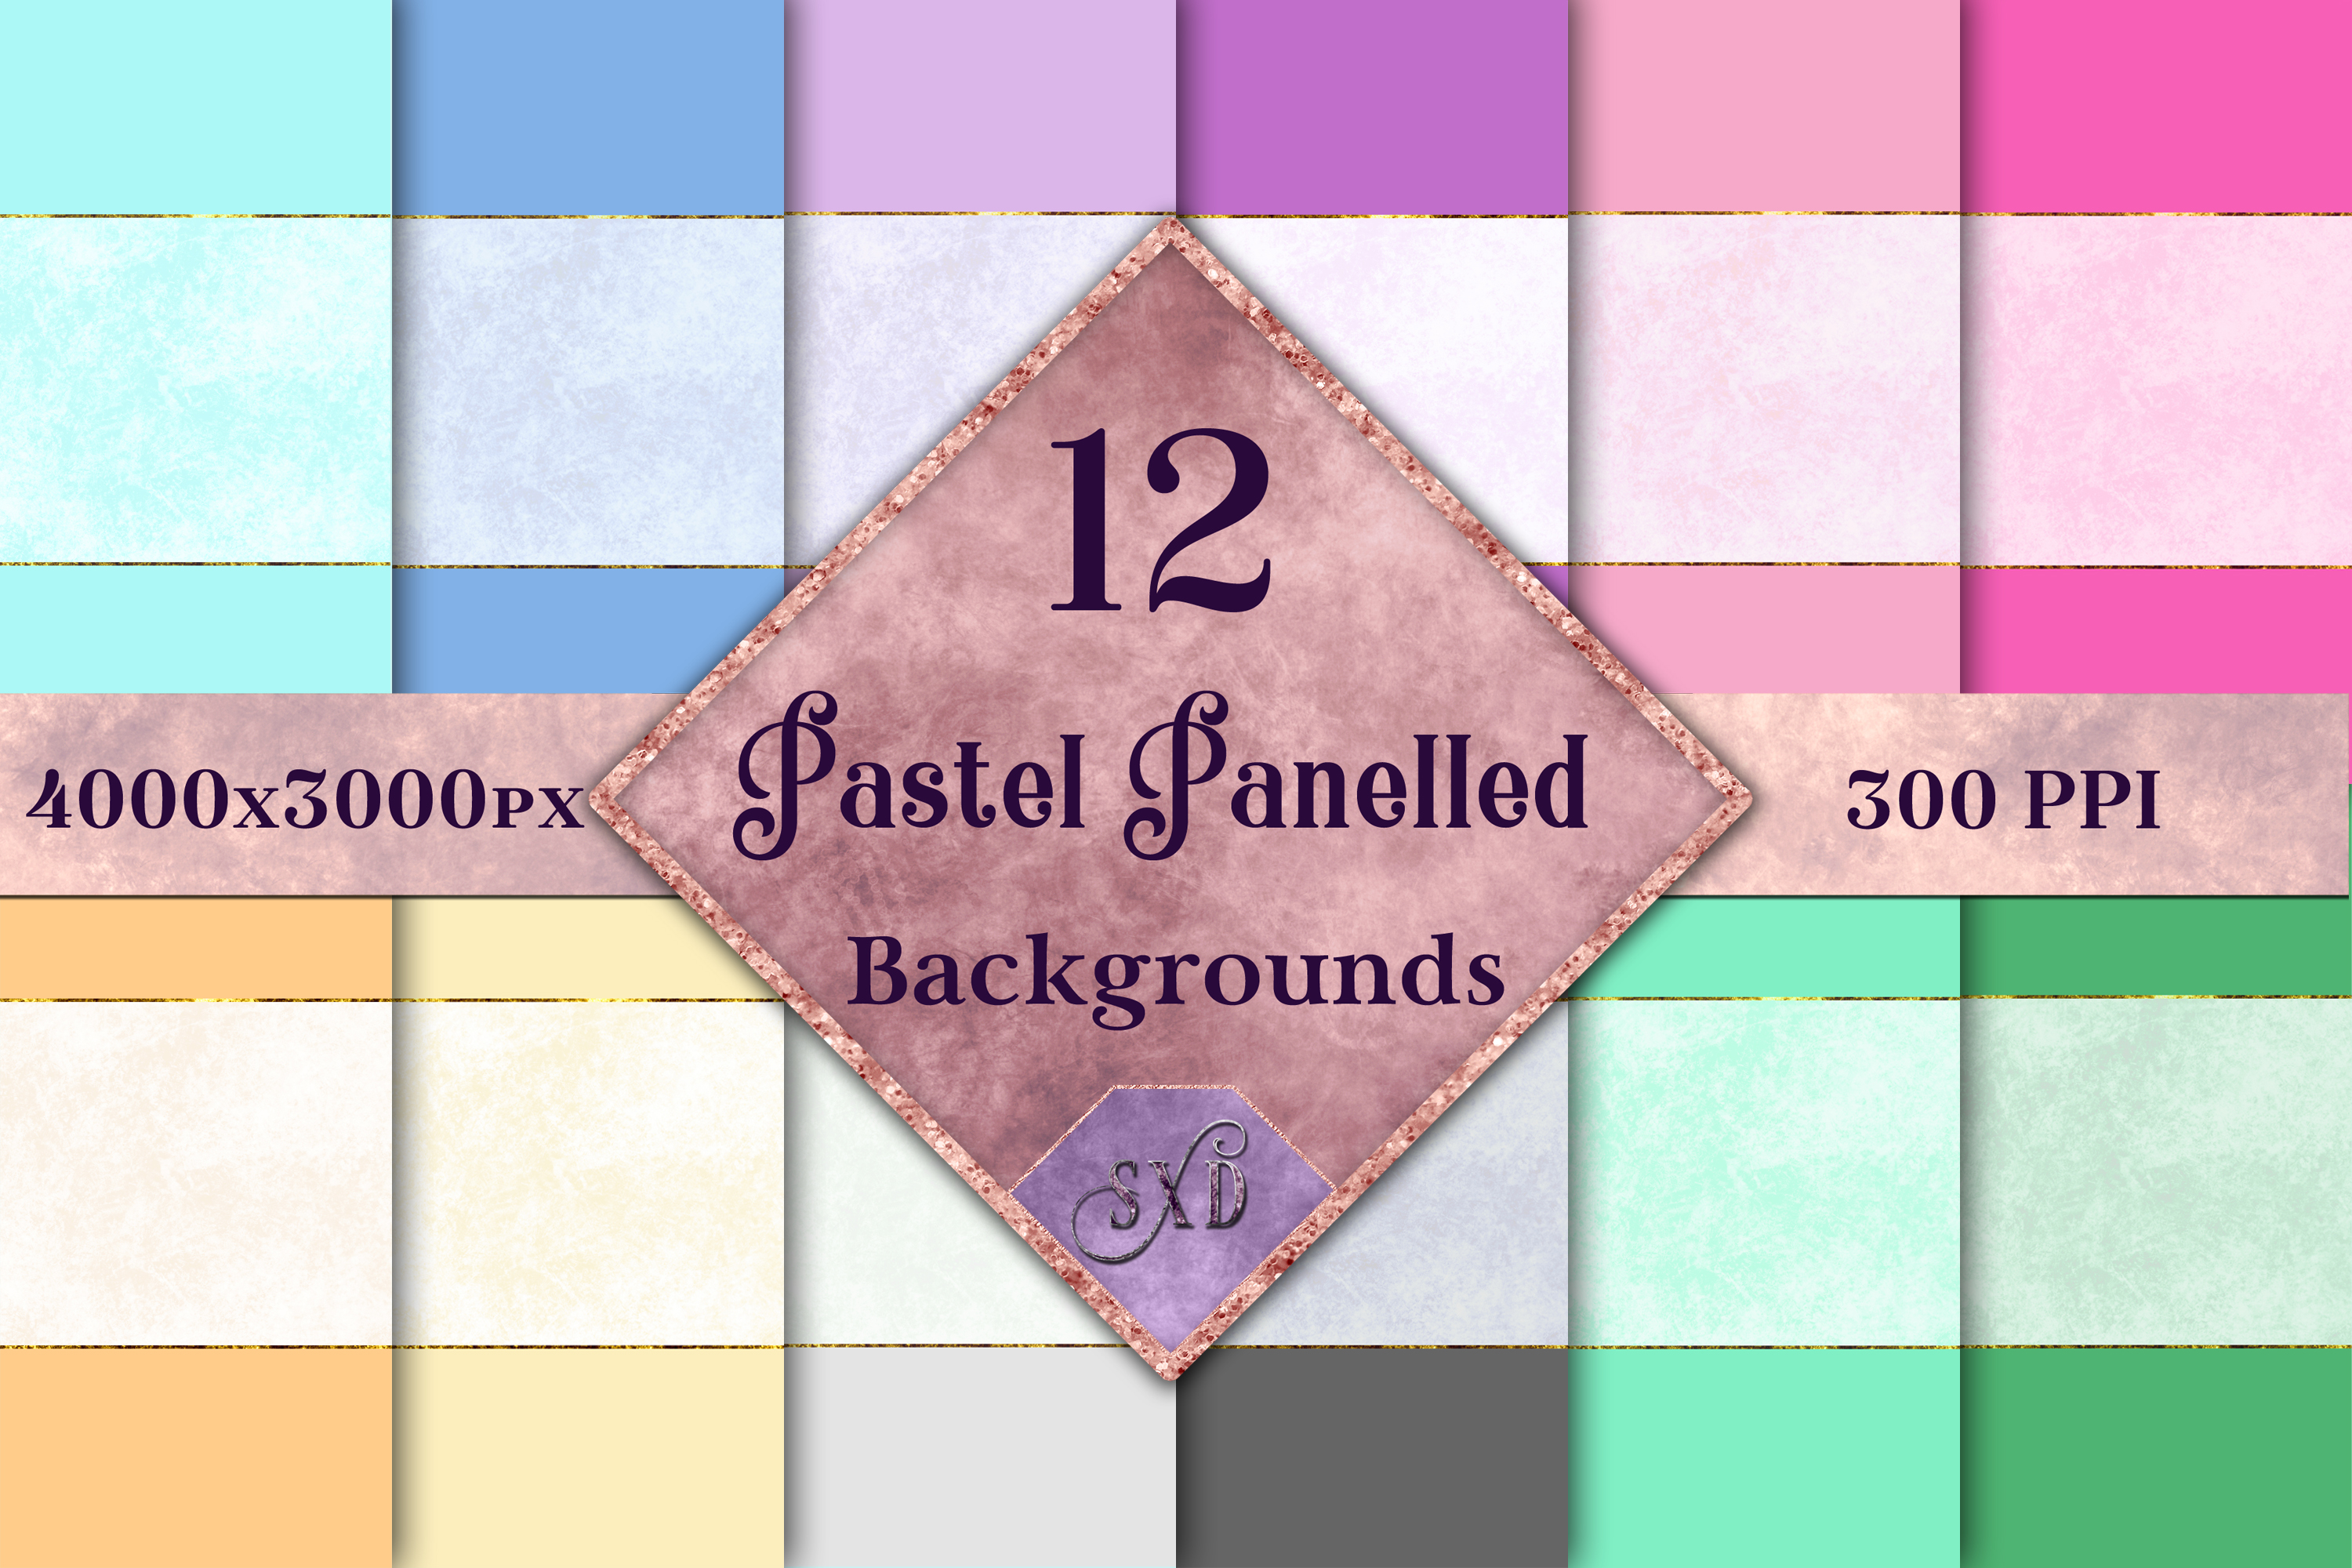 Pastel Panelled Backgrounds - 12 Image Textures Set example image 1